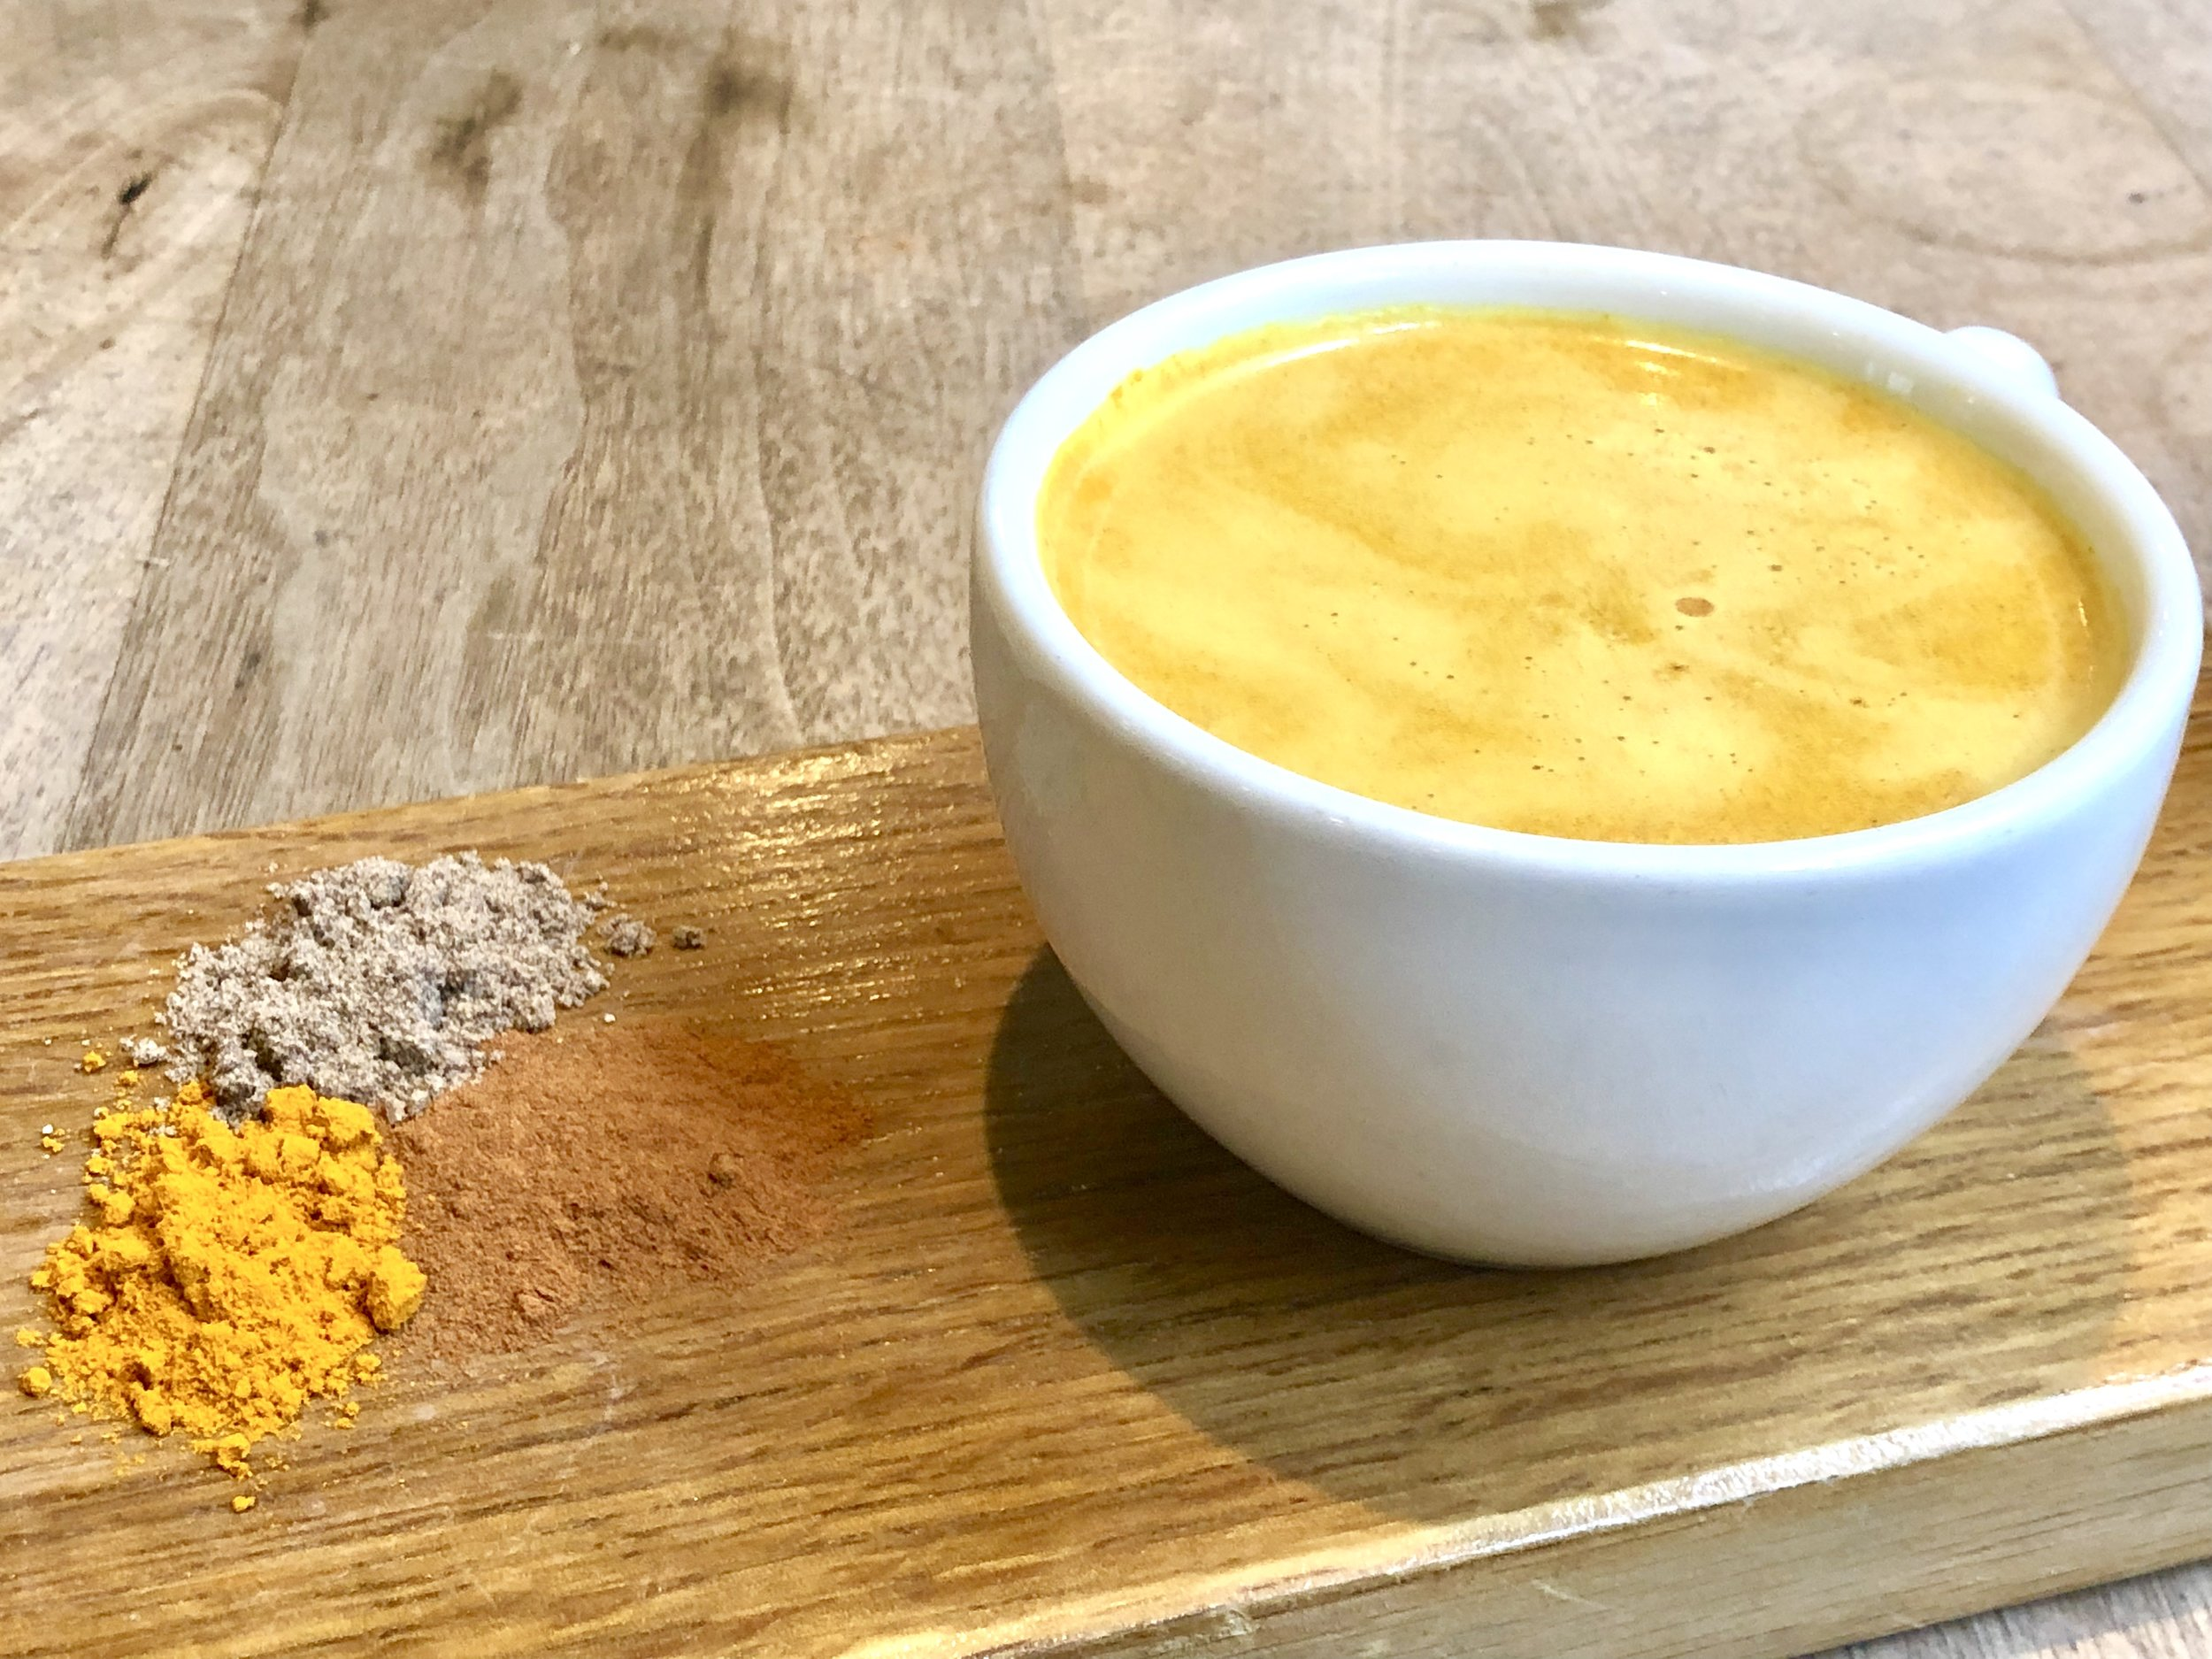 Now served at all our cafe locations…. - Our Golden Turmeric Latte is back at The Plant Cafe Organic and we couldn't be more excited! Our golden turmeric latte is a warming aromatic blend of spices - that combined together is known to have anti-inflammatory & antioxidant benefits. We blend your choice of milk with our signature turmeric spice blend and combine with a touch of agave and our homemade vanilla syrup.Looking for a caffeine boost? - Add on a shot of espresso! We use SF's local and fair trade Highwire Coffee!The Dynamic Duo that boosts this latte's health benefits:The secret to activating turmeric is black pepper. The reason is because turmeric has a compound known as Curcumin which is the bright yellow chemical that gives the vibrant color in turmeric. Curcumin is known to have wonderful anti-inflammatory properties and when you ingest turmeric with black pepper, you increase the amount of Curcumin your body can absorb and use.In our spice blend, we unite cardamom, cinnamon, turmeric, black pepper, and ginger together for a flavorful and warming latte. Try it with our signature vegan banana bread or our freshly baked seasonal fruit scones for the perfect latte and pastry combination.